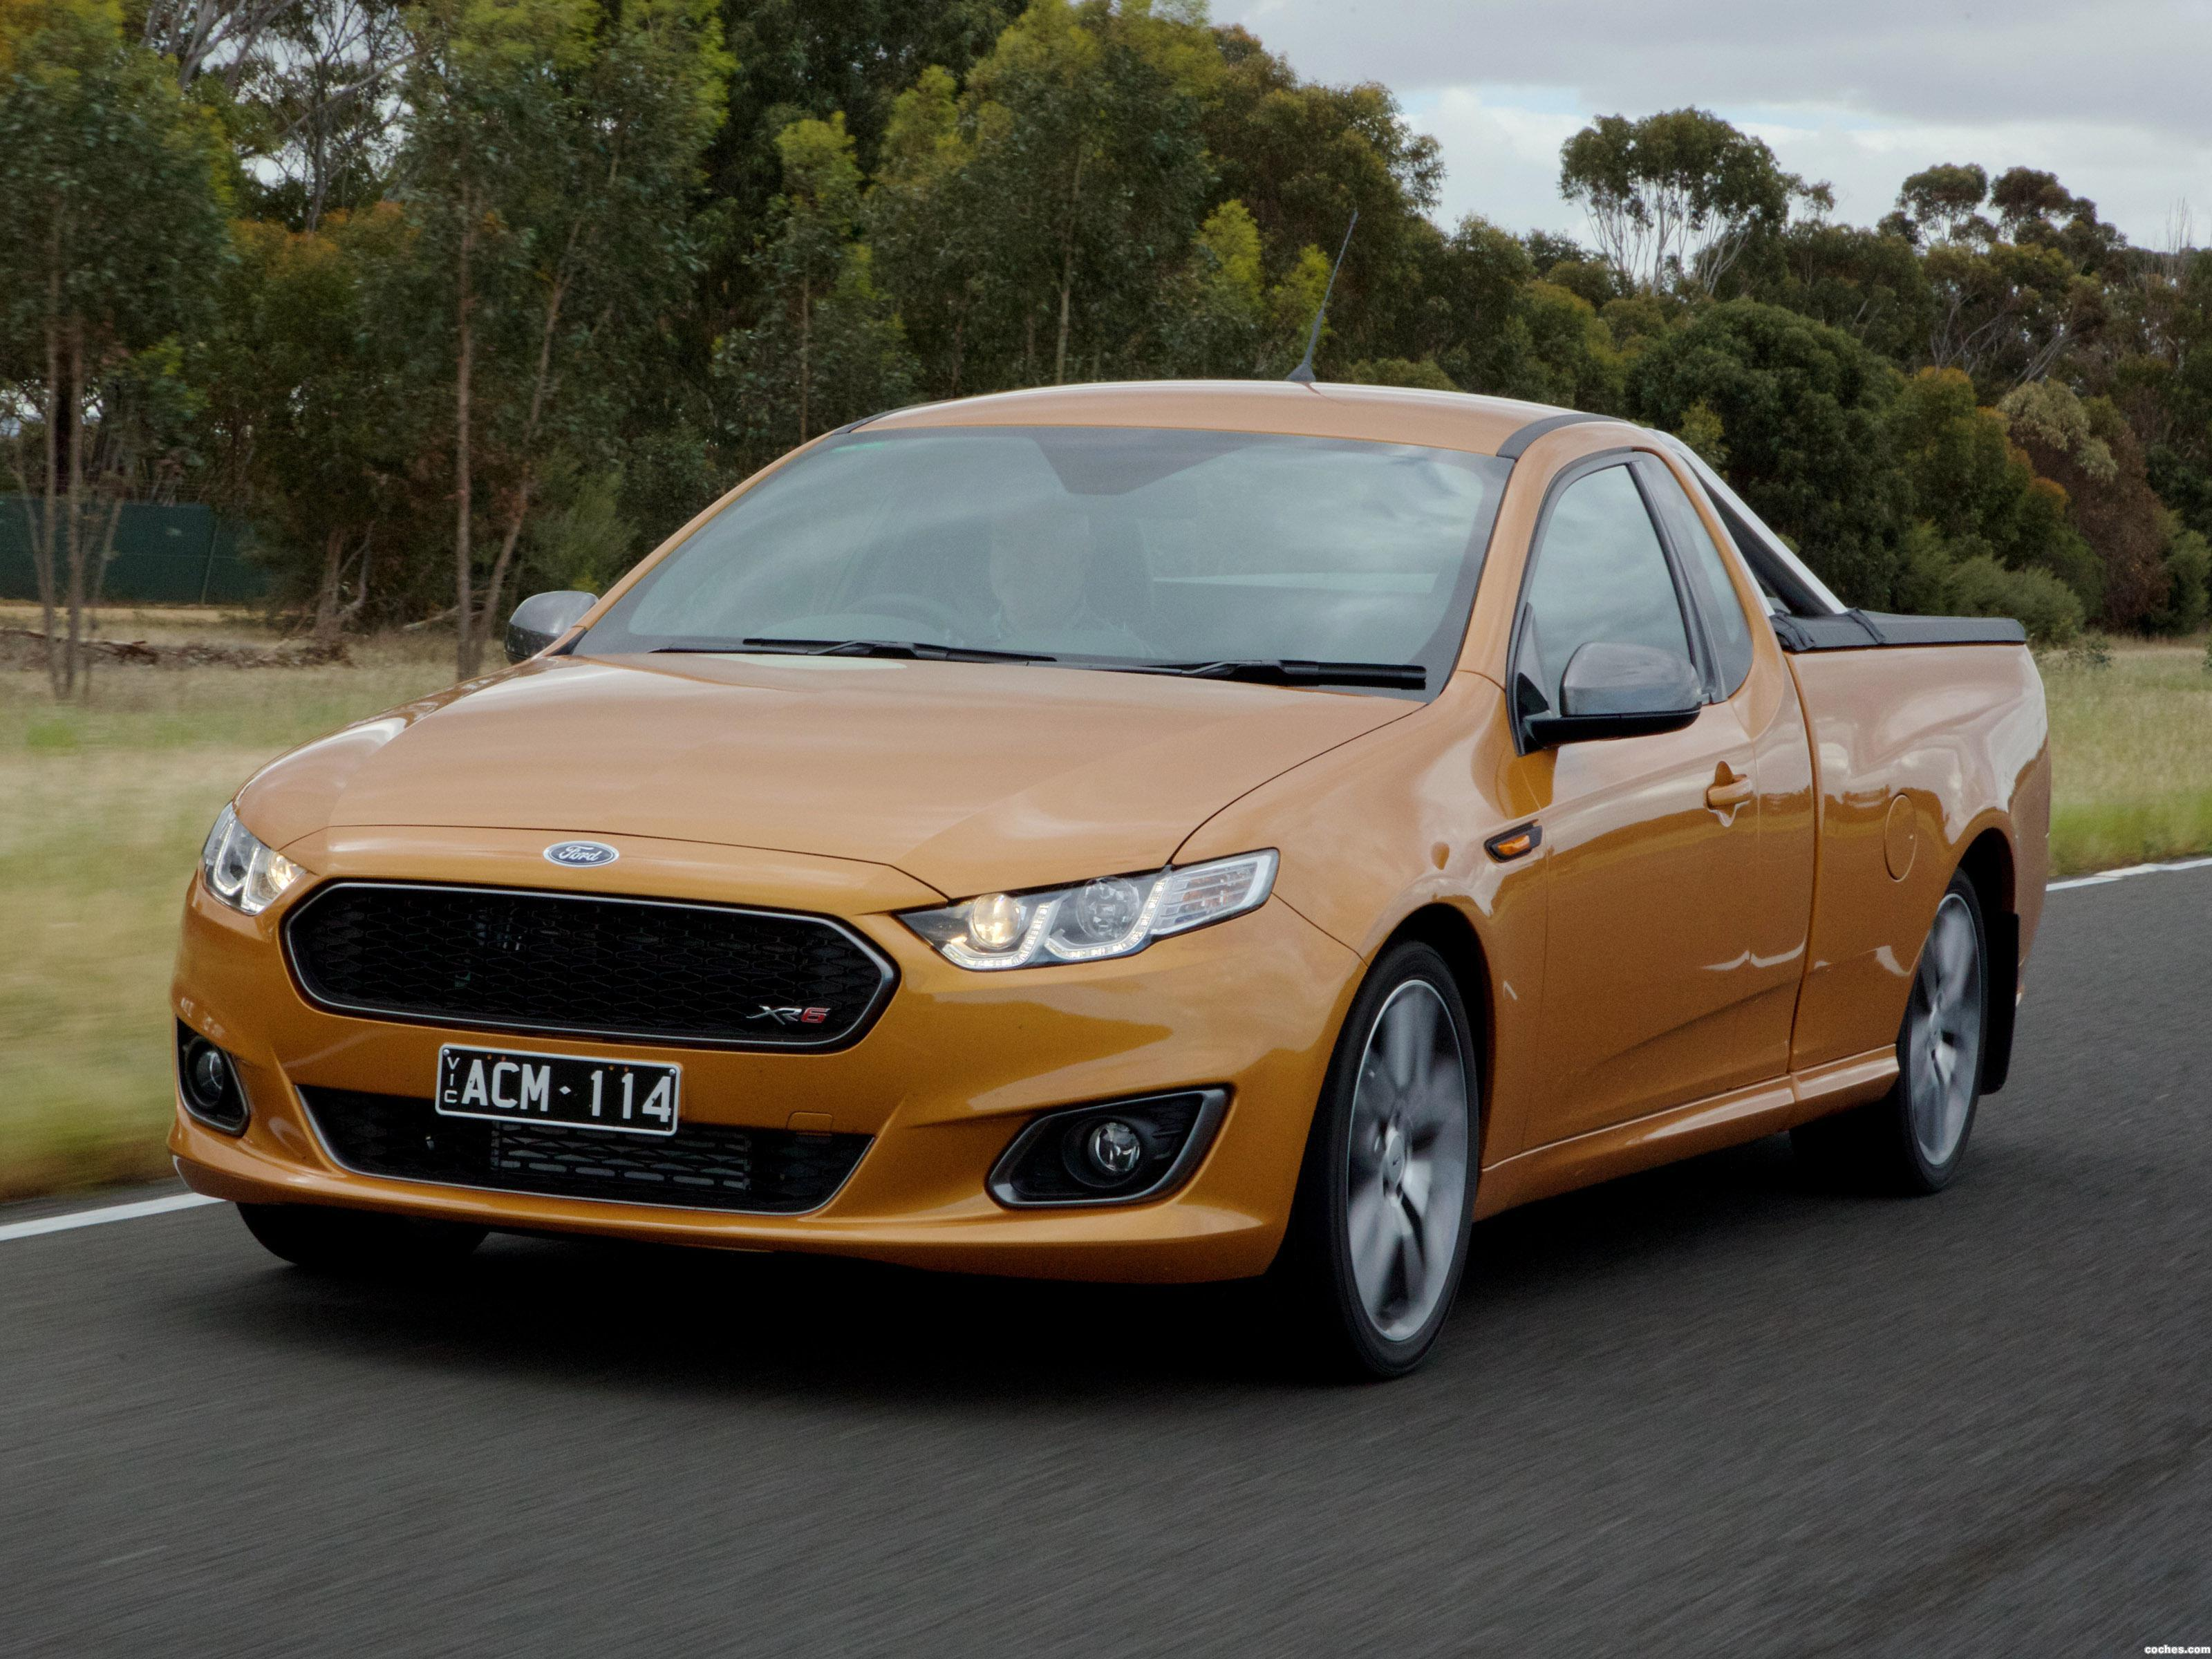 Foto 0 de Ford Falcon XR6 Turbo Ute FG  2014